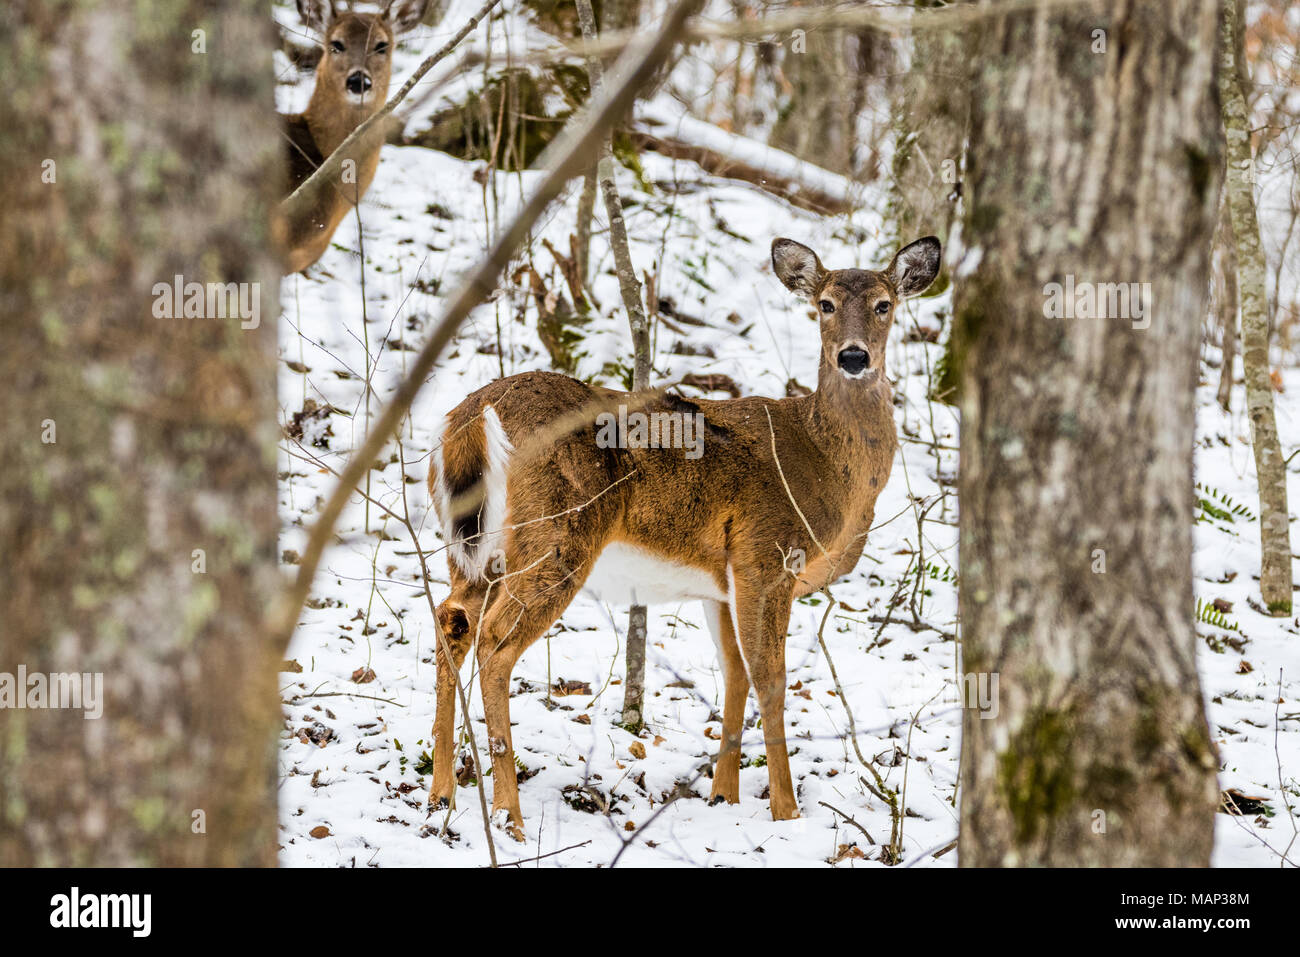 A whitetail deer pauses in the forest. - Stock Image